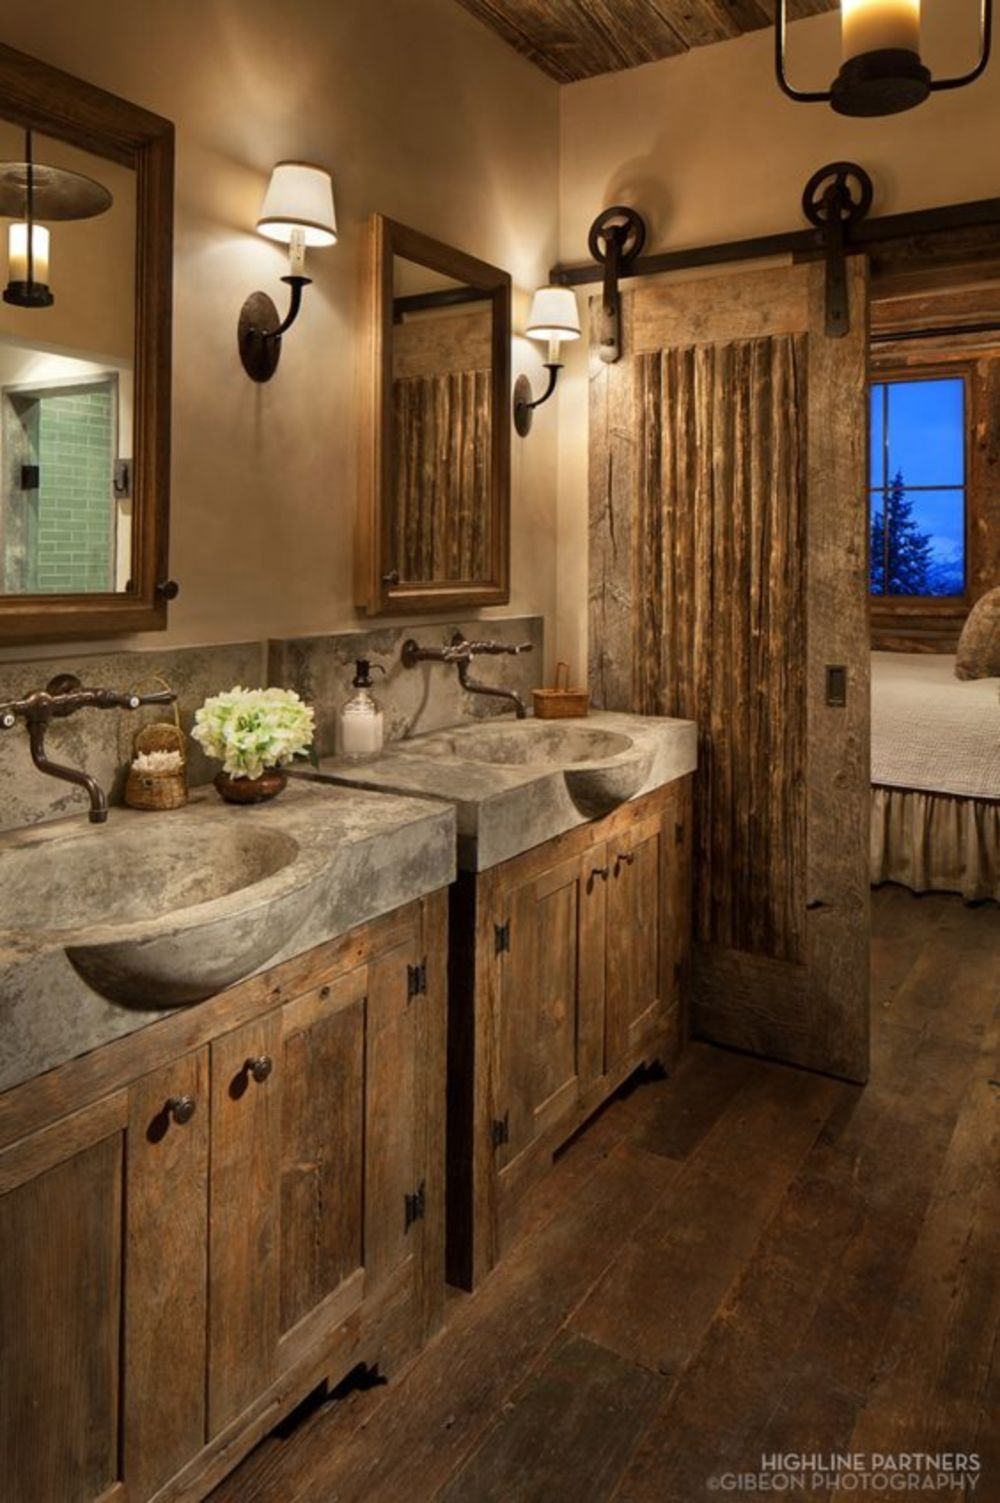 46 Wonderful Rustic Bathroom Decorating Ideas  Rustic Bathrooms Cool Wonderful Bathroom Designs Decorating Inspiration